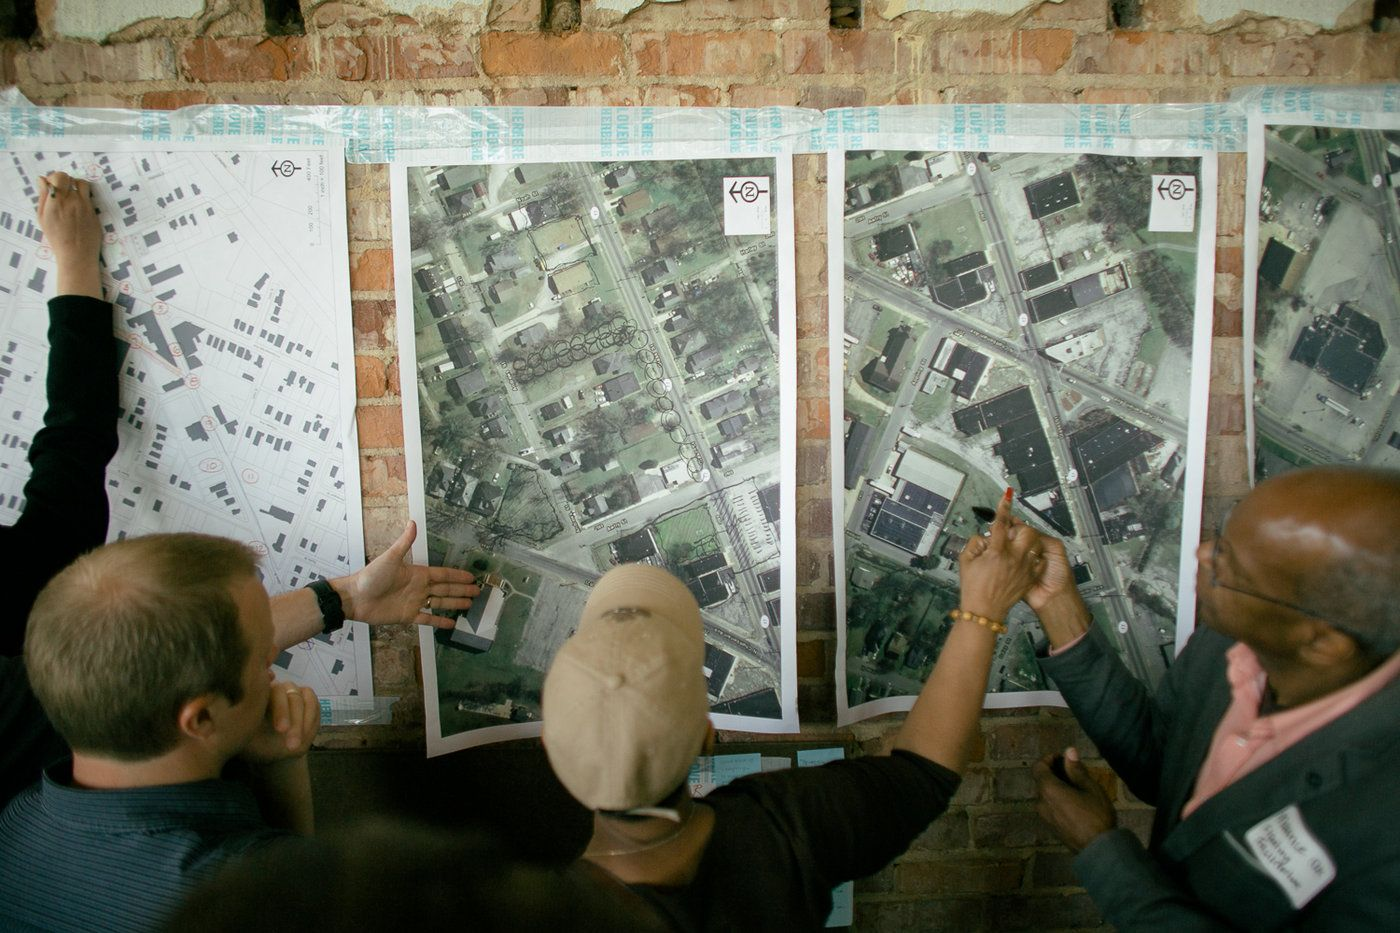 Medium shot of several people looking at printouts of a Chattanooga map.